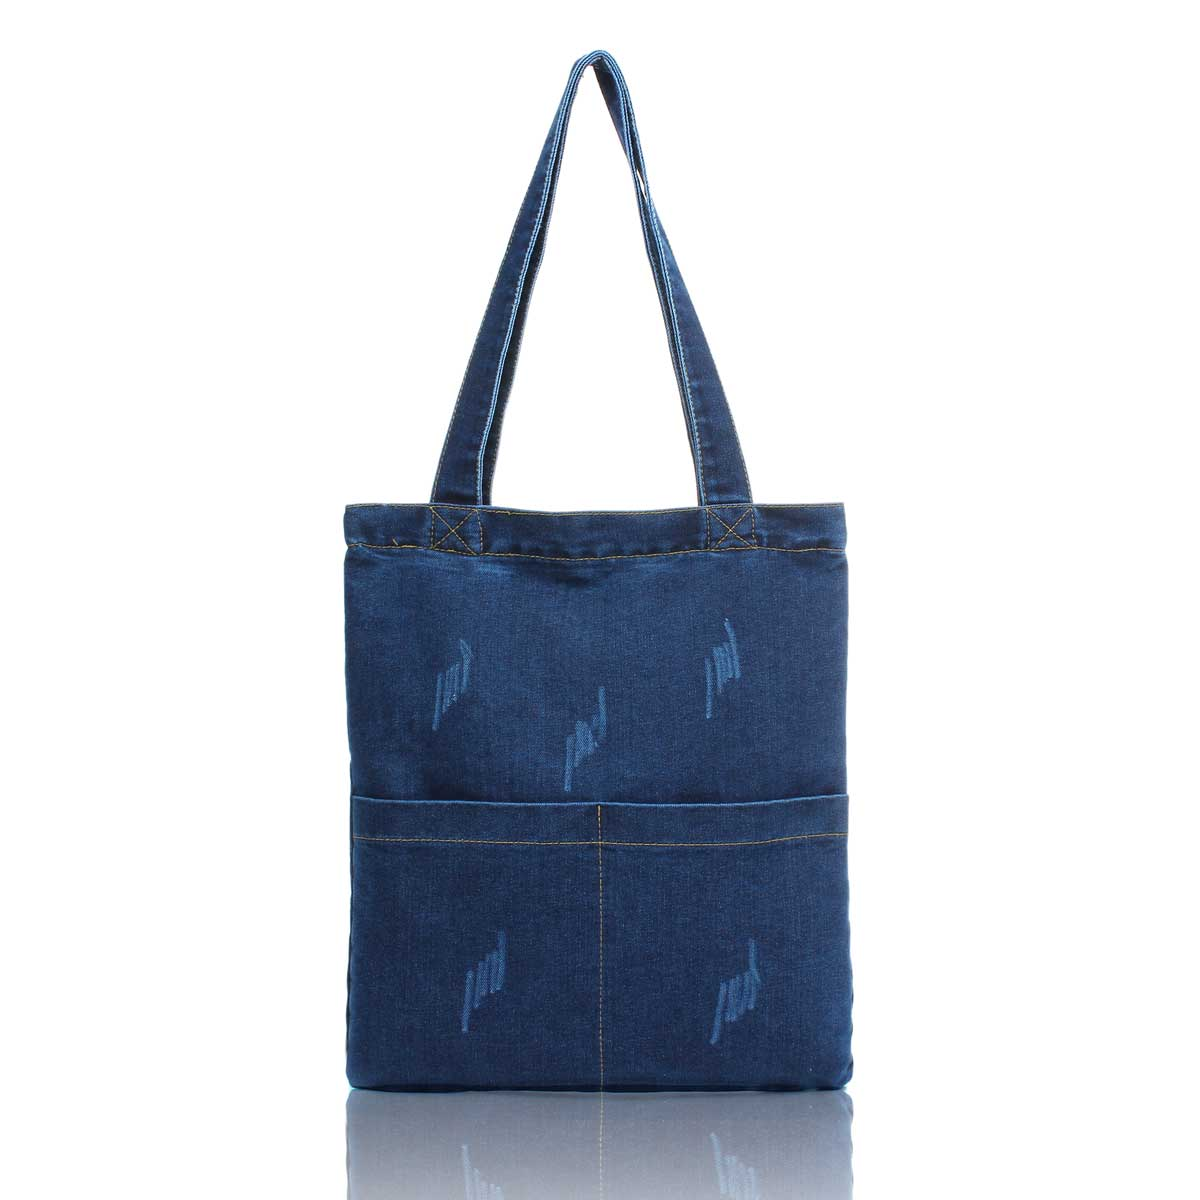 2016 Large Capacity Women Bag Denim Handbags Shoulder Bags Jean Fabric Summer Sping Style Daily Simple Design Casual Totes<br><br>Aliexpress